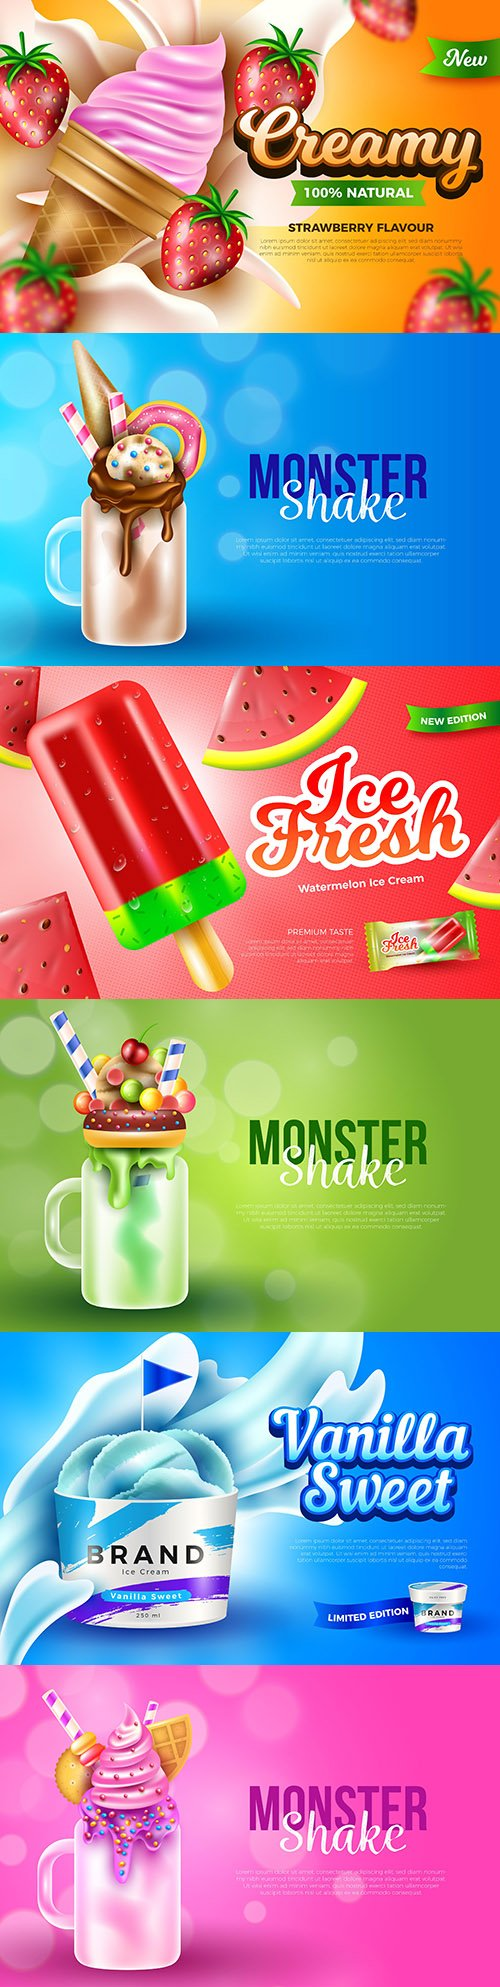 Ice cream and monster shake poster advertising design